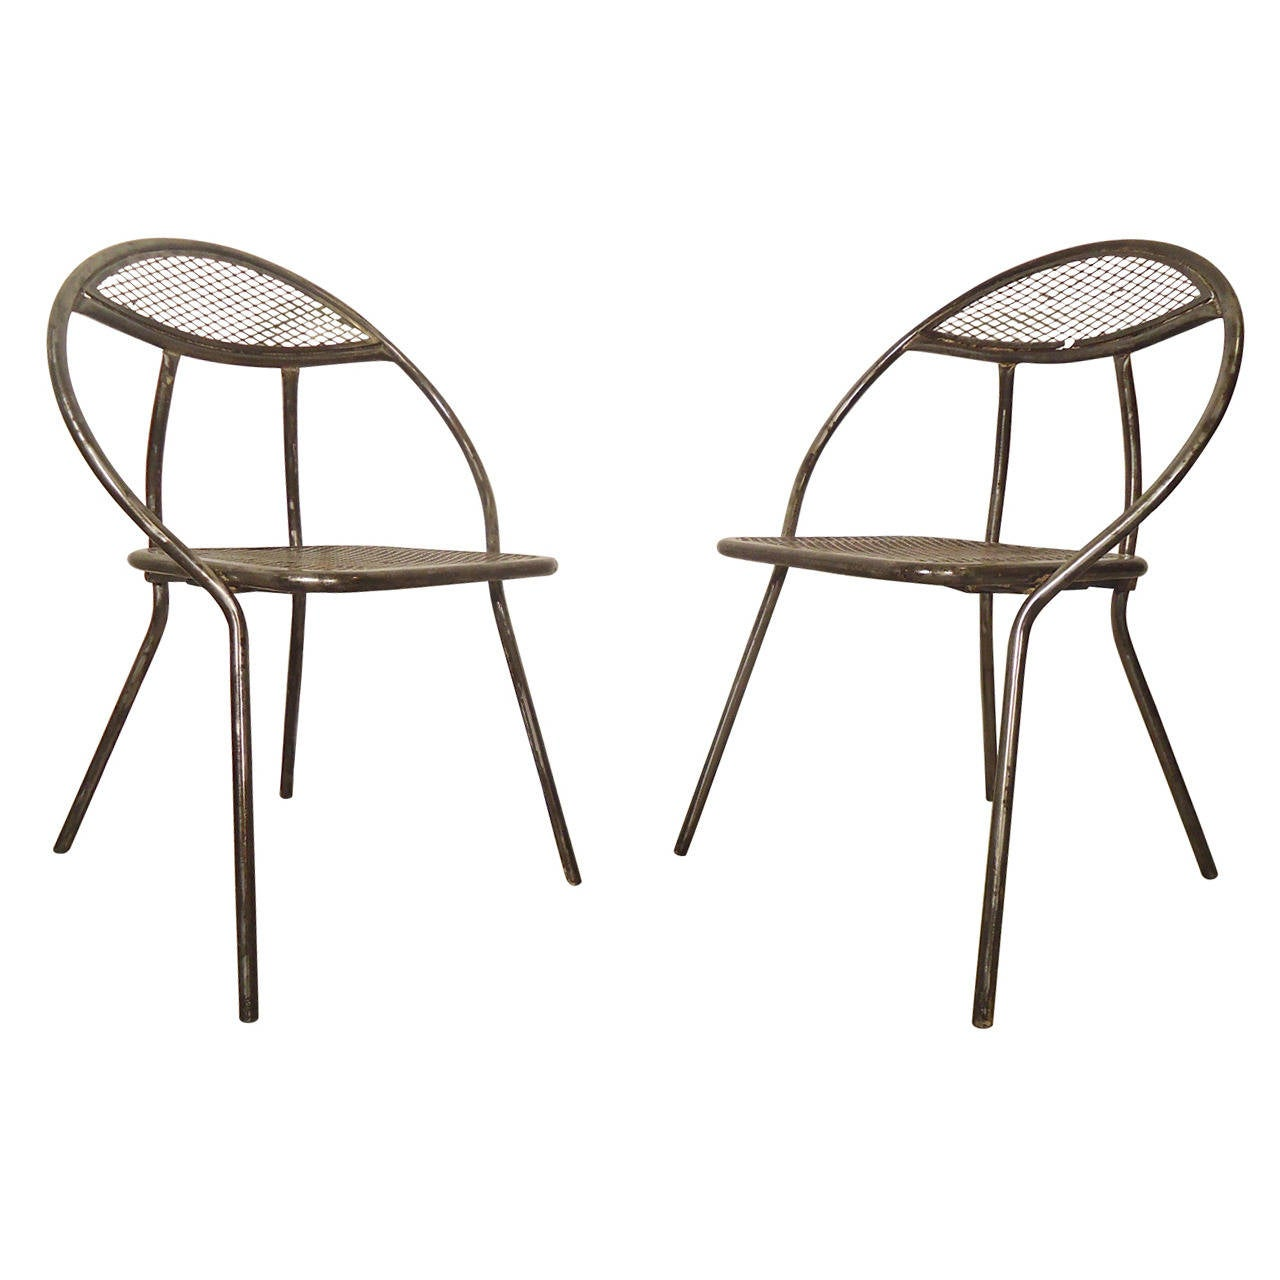 Mid Century Metal Patio Chairs By Rid Jid At 1stdibs